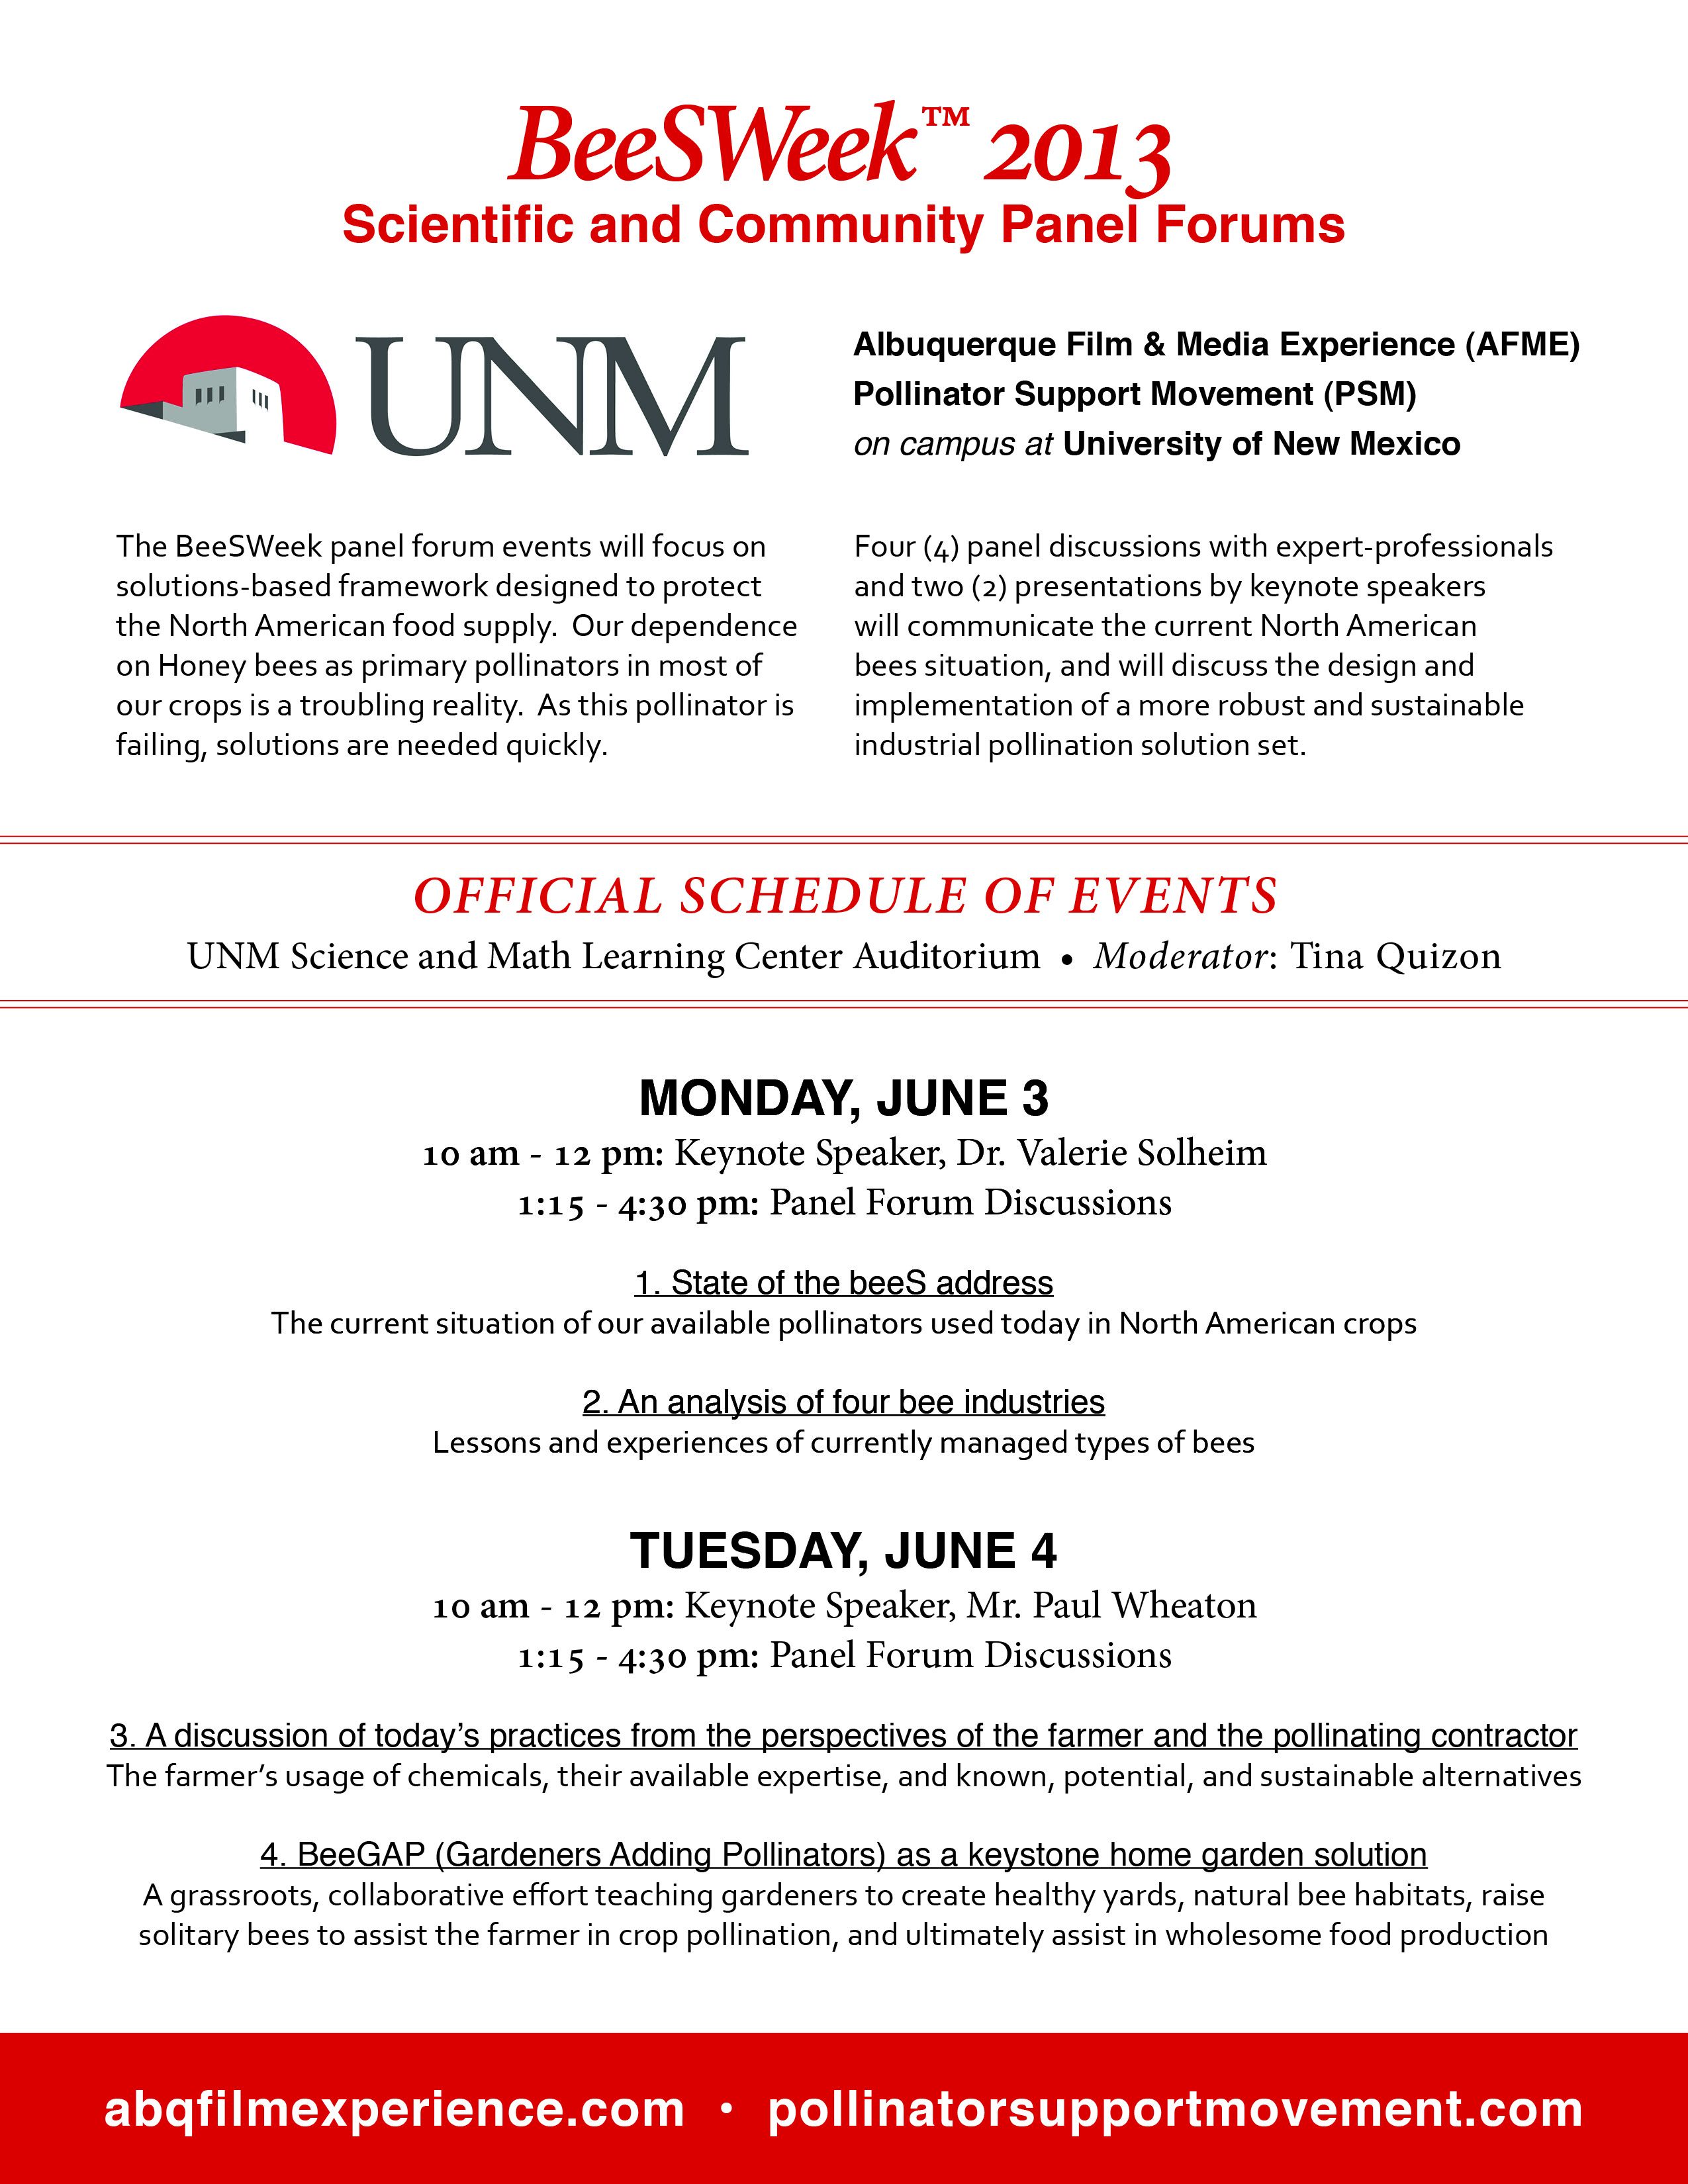 [Thumbnail for BeeSWeek at UNM - Official Schedule of Events.jpg]